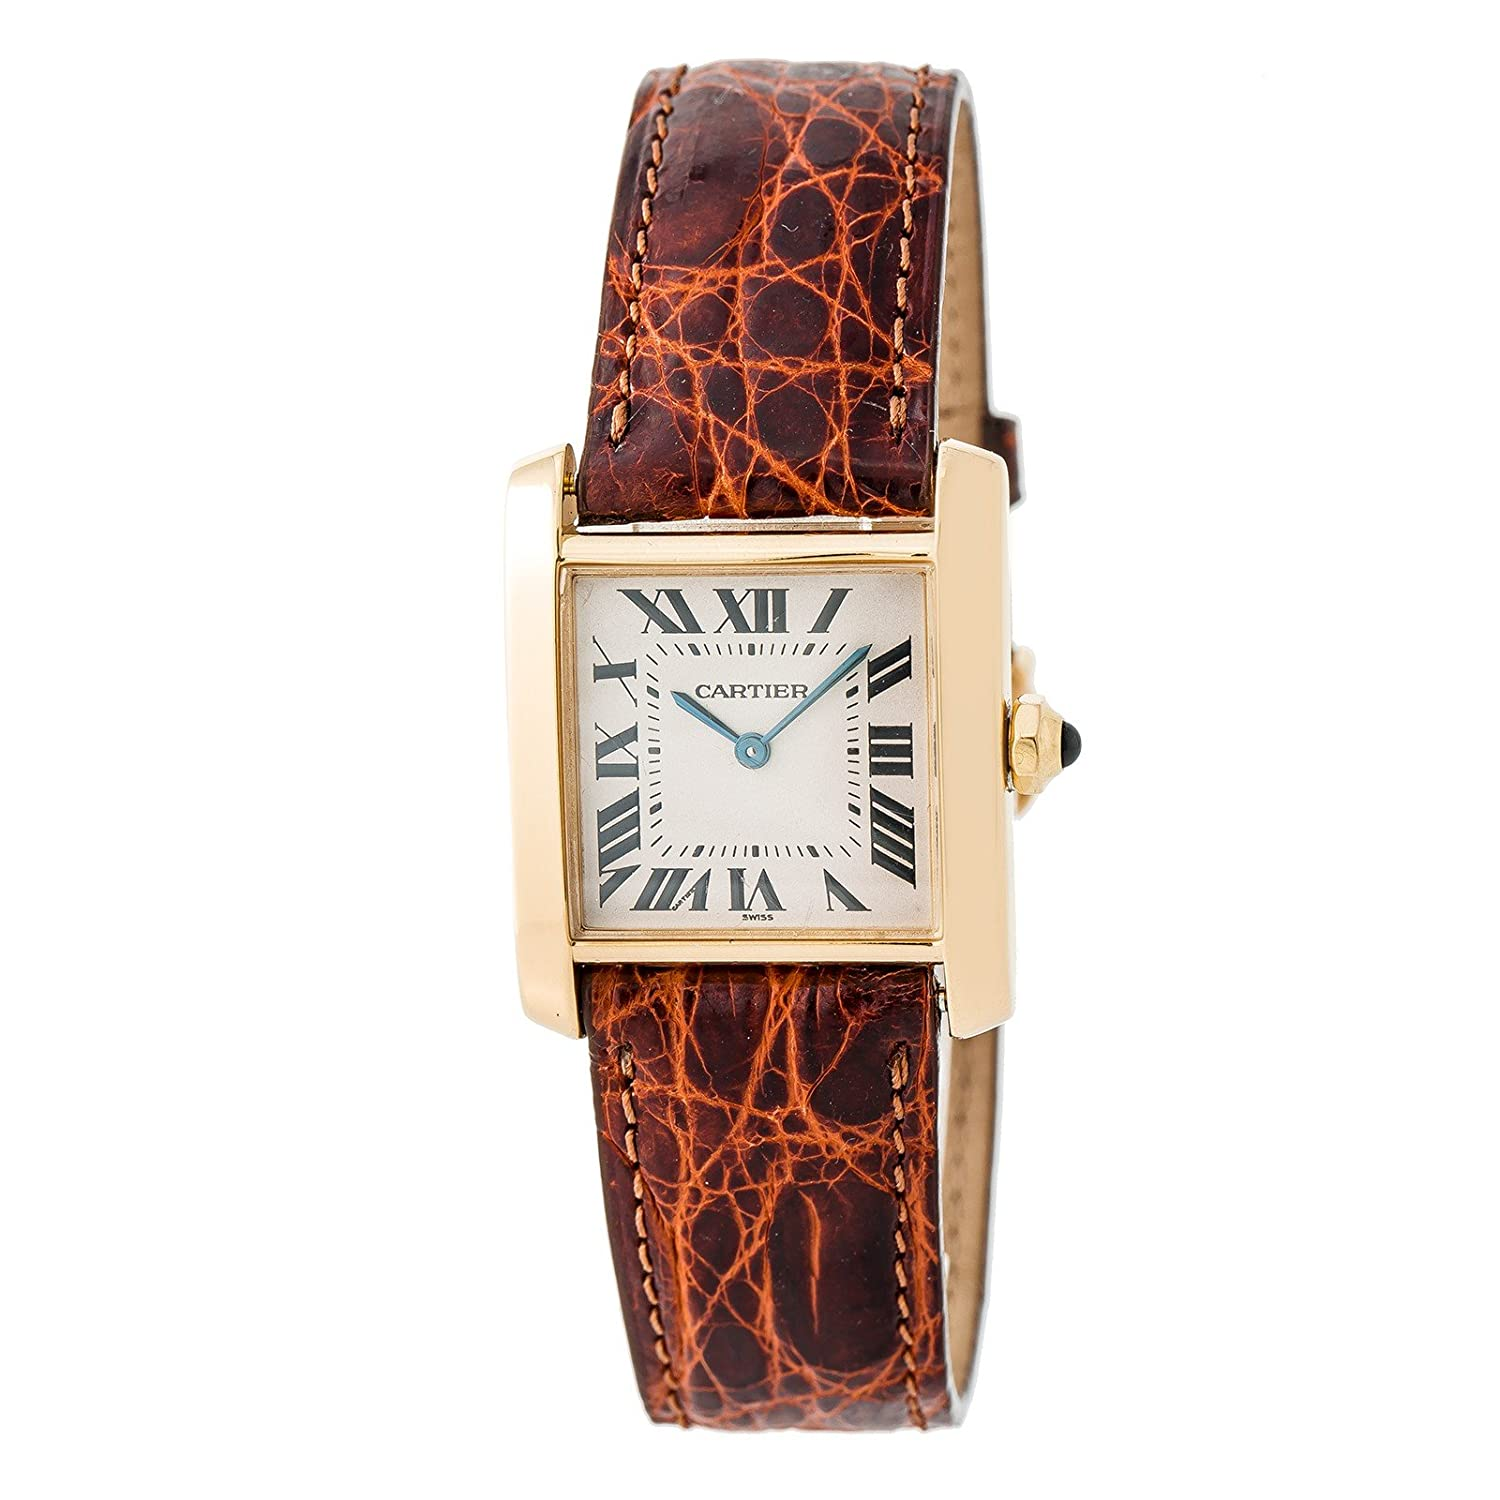 Amazon.com: Cartier Tank Francaise Quartz Womens Watch 1821 (Certified Pre-Owned): Cartier: Watches